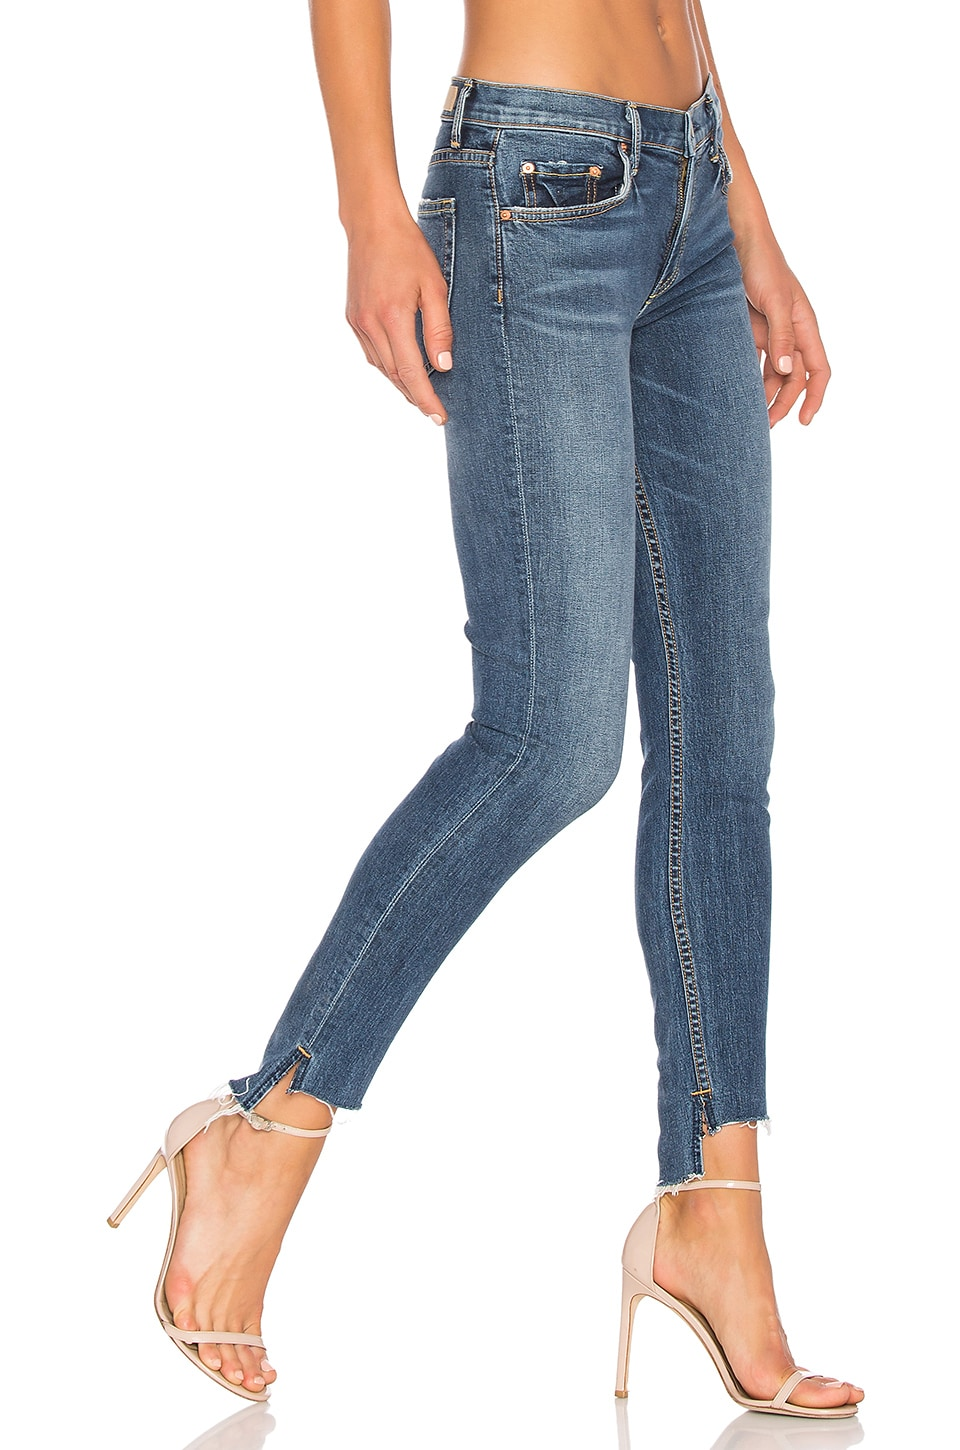 GRLFRND x REVOLVE Candice Mid-Rise Skinny Jean in No More Tears